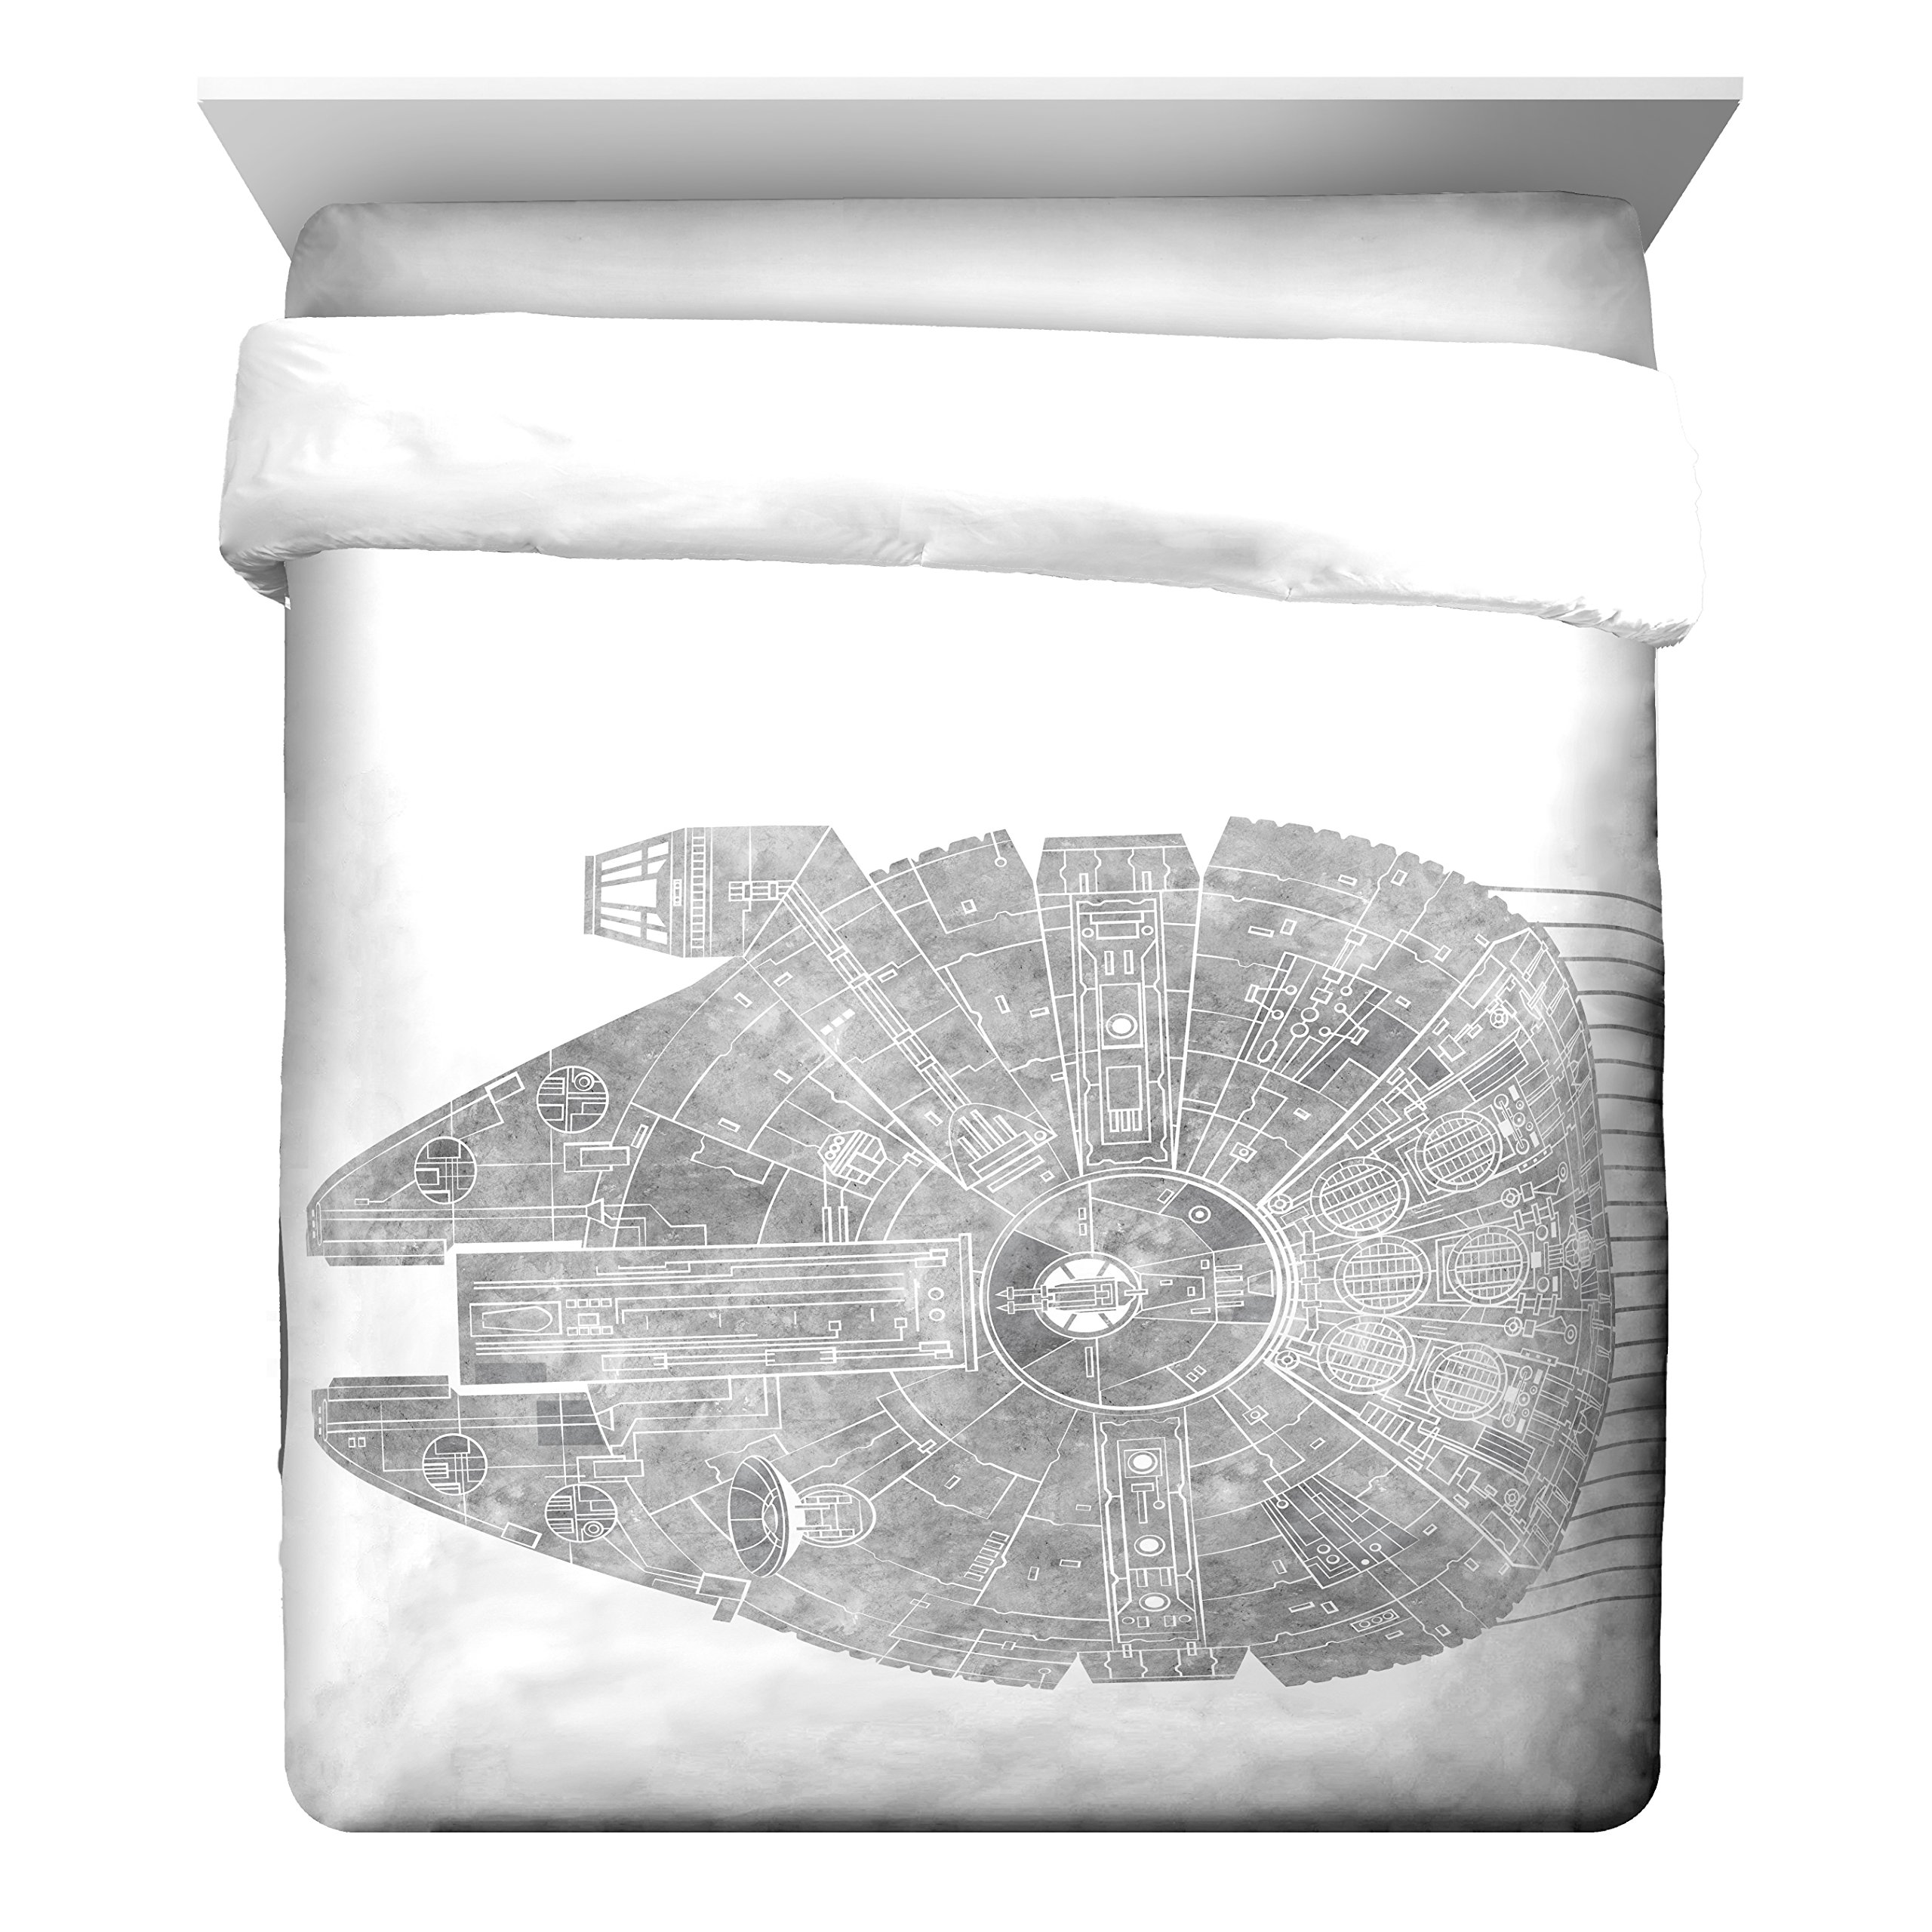 Star Wars Classic Falcon / California King Comforter - Super Soft Kids Reversible Bedding features the Millennium Falcon - Fade Resistant Polyester Microfiber Fill (Official Star Wars Product) by Jay Franco